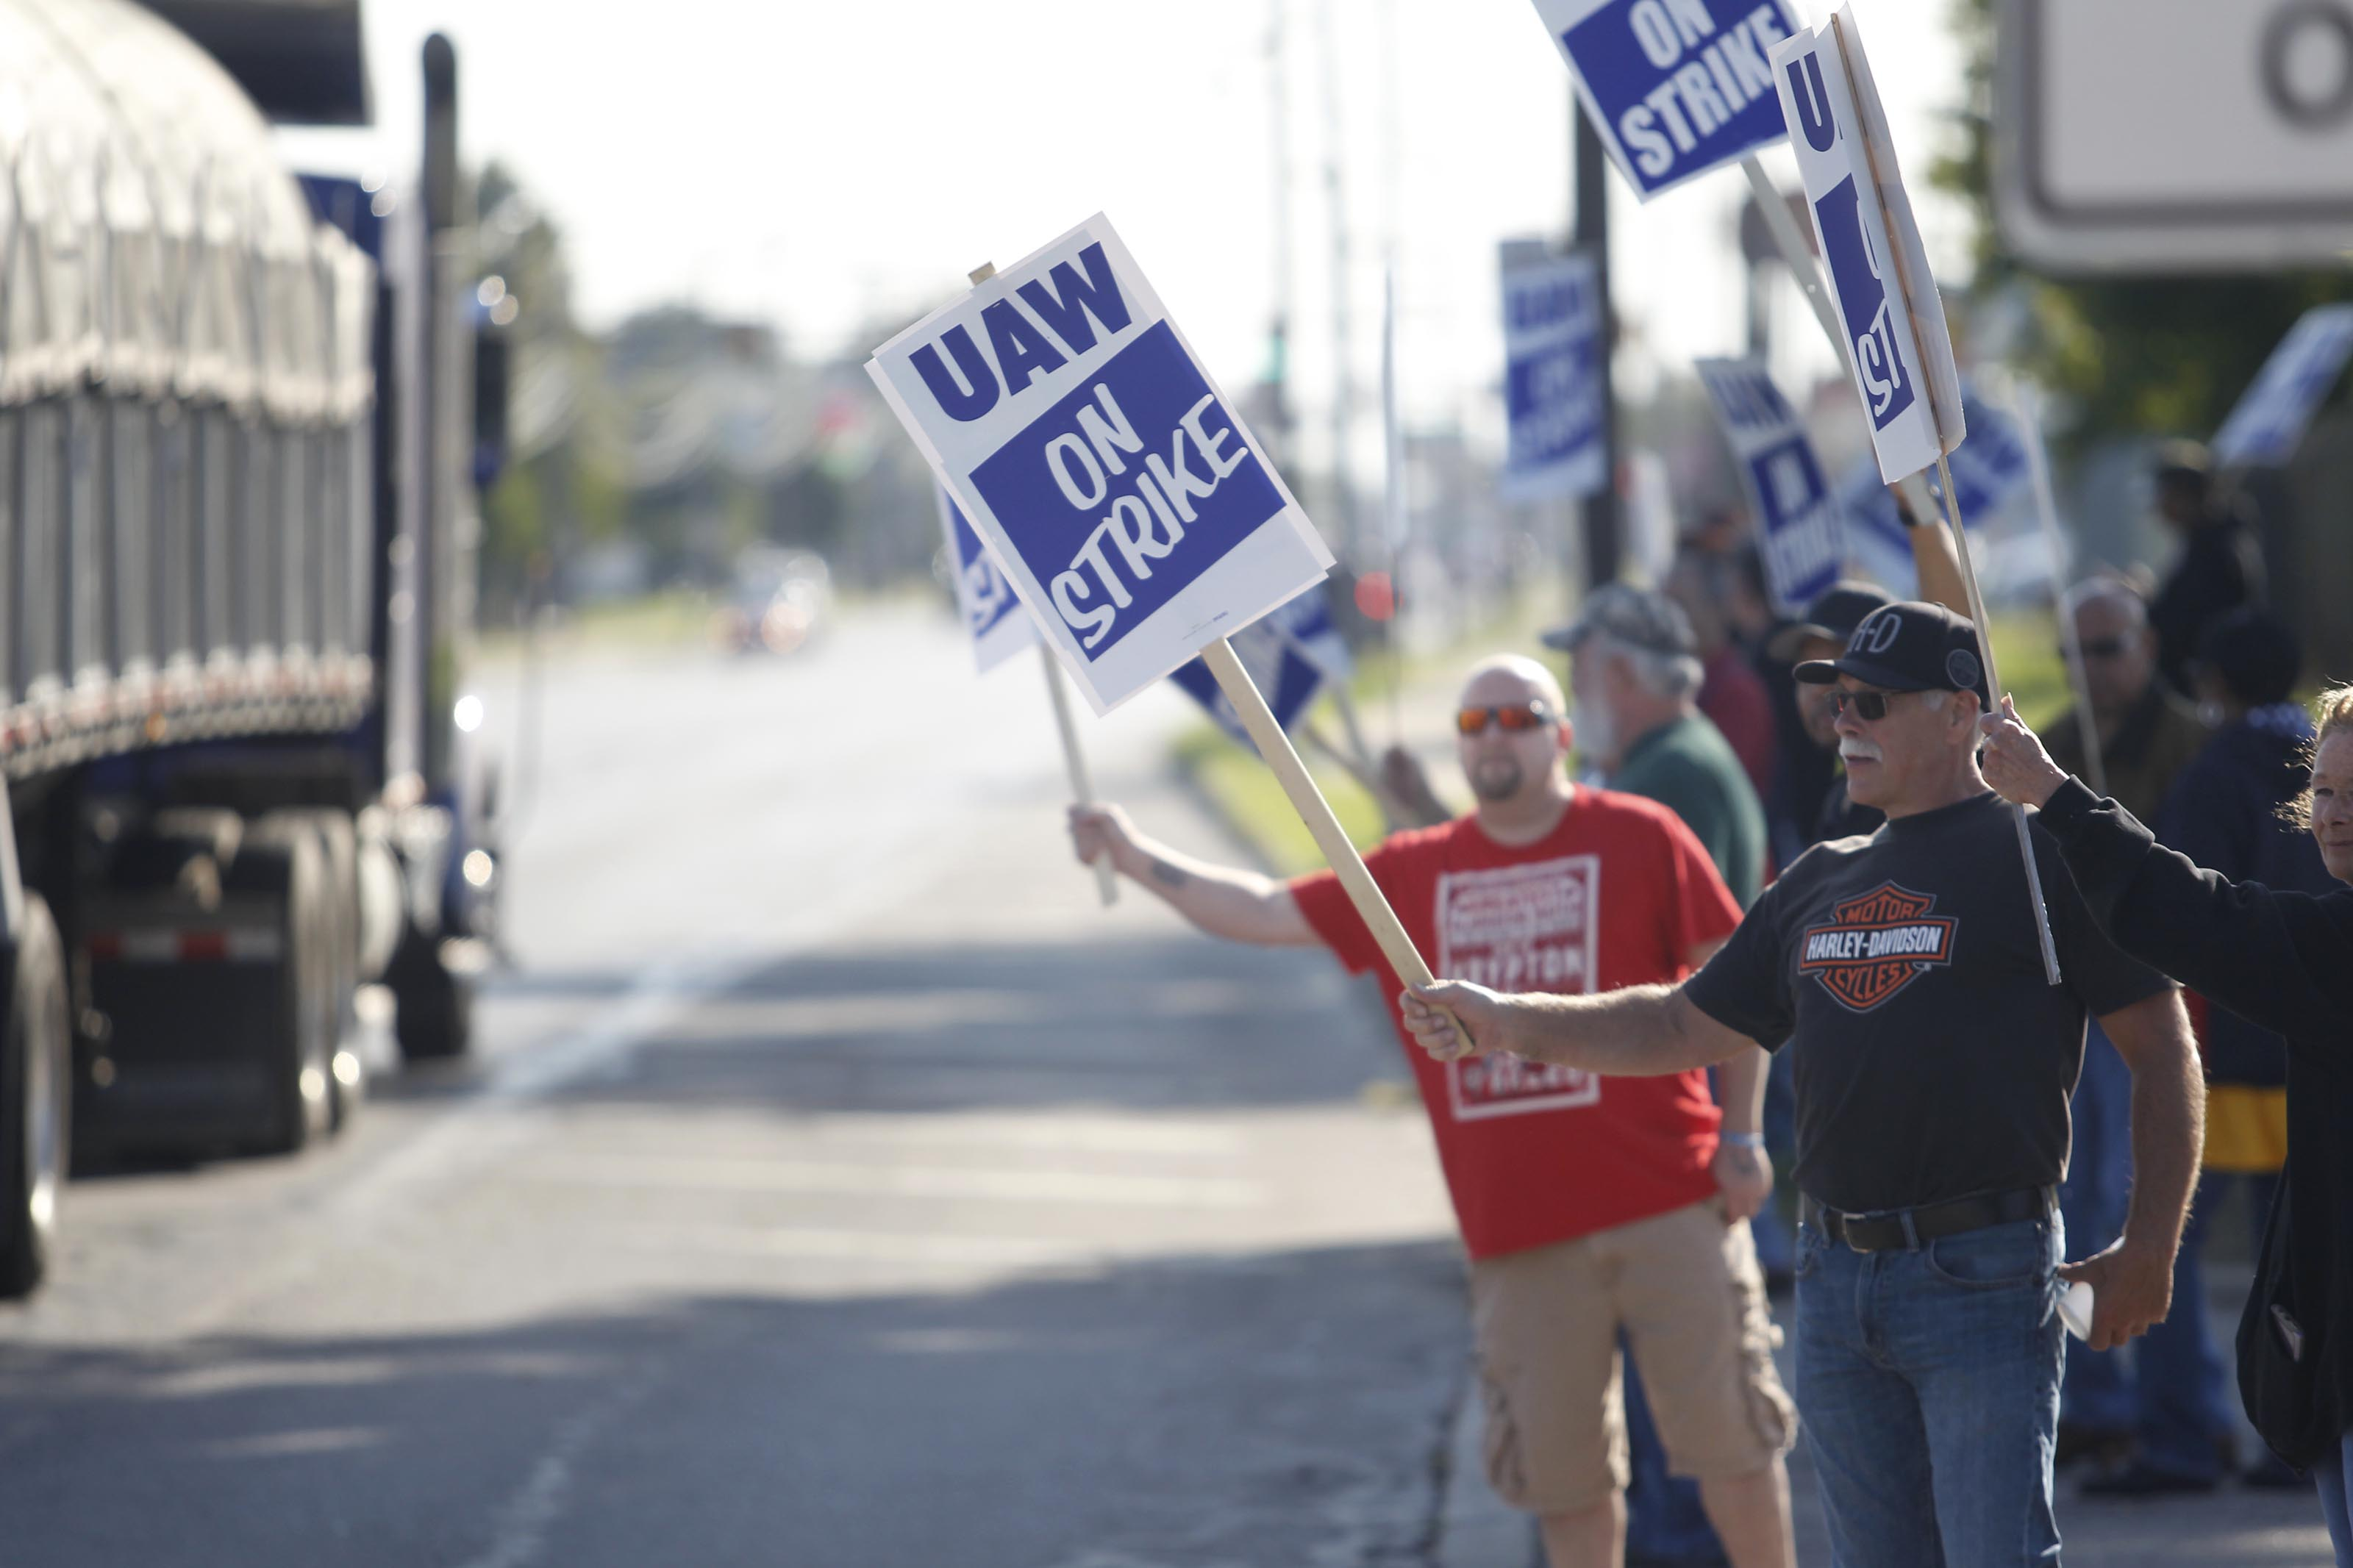 After losing more than $1 billion, GM makes a deal with striking workers